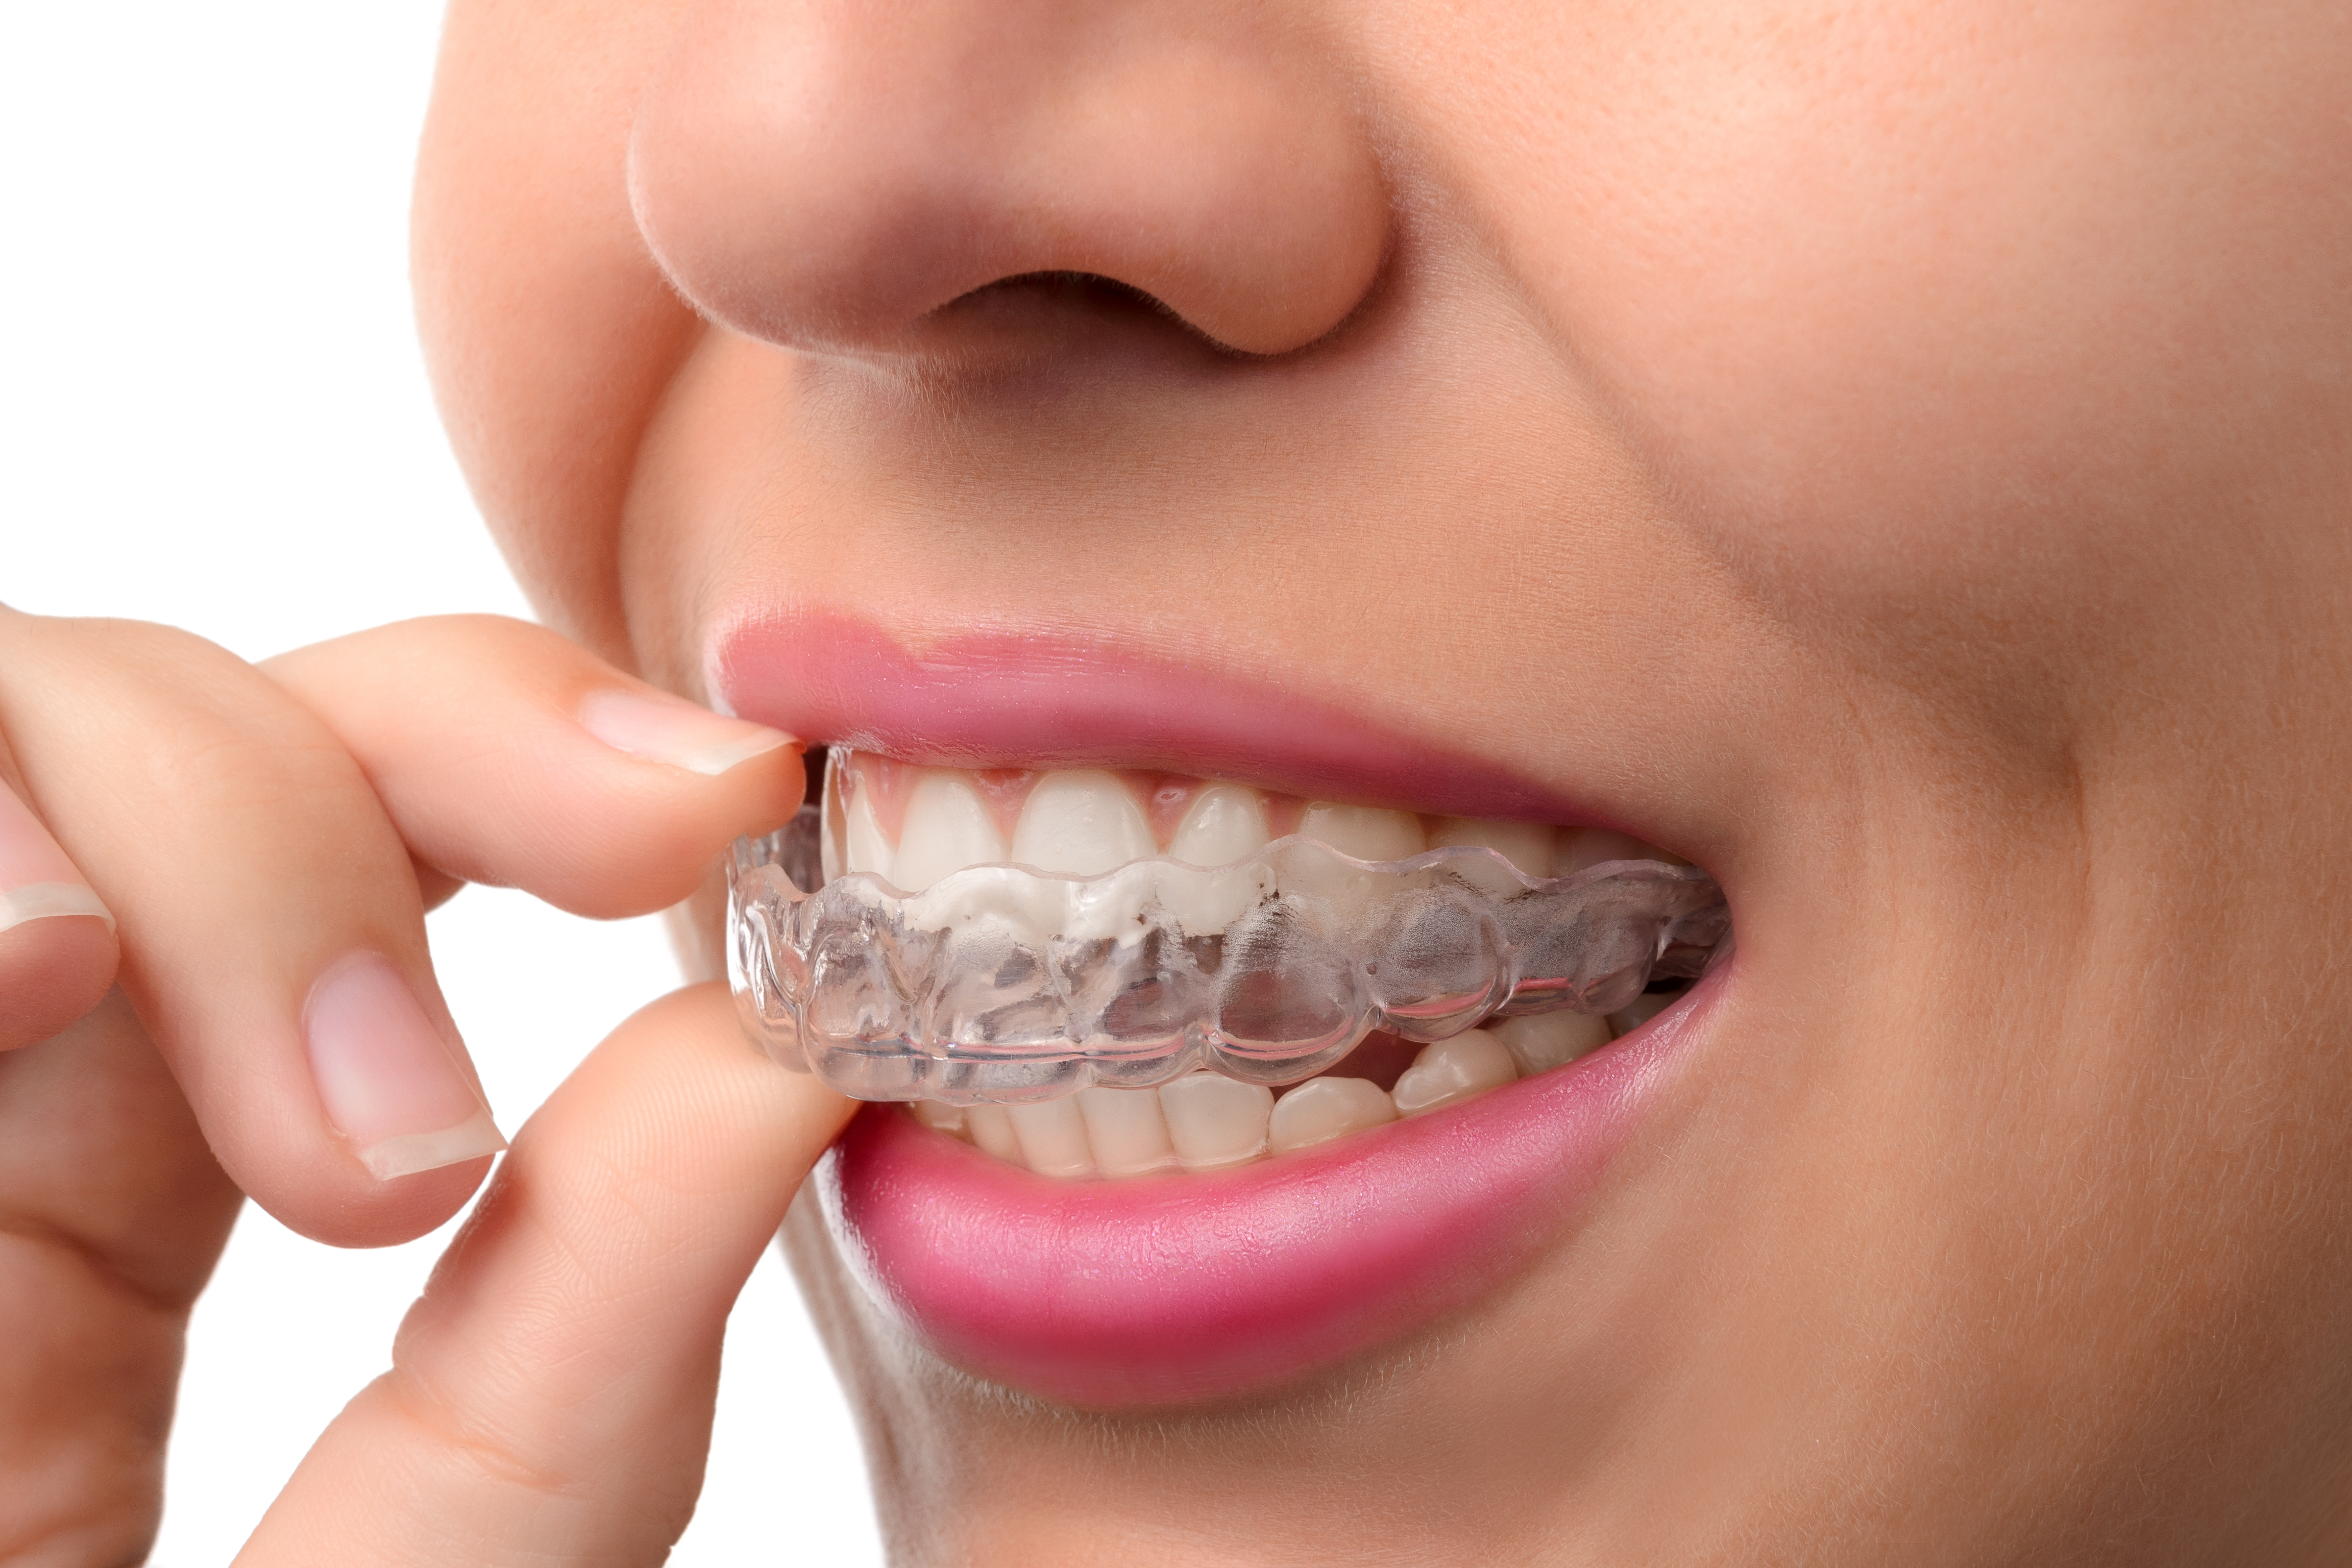 What Does Wearing Invisalign Feel Like?